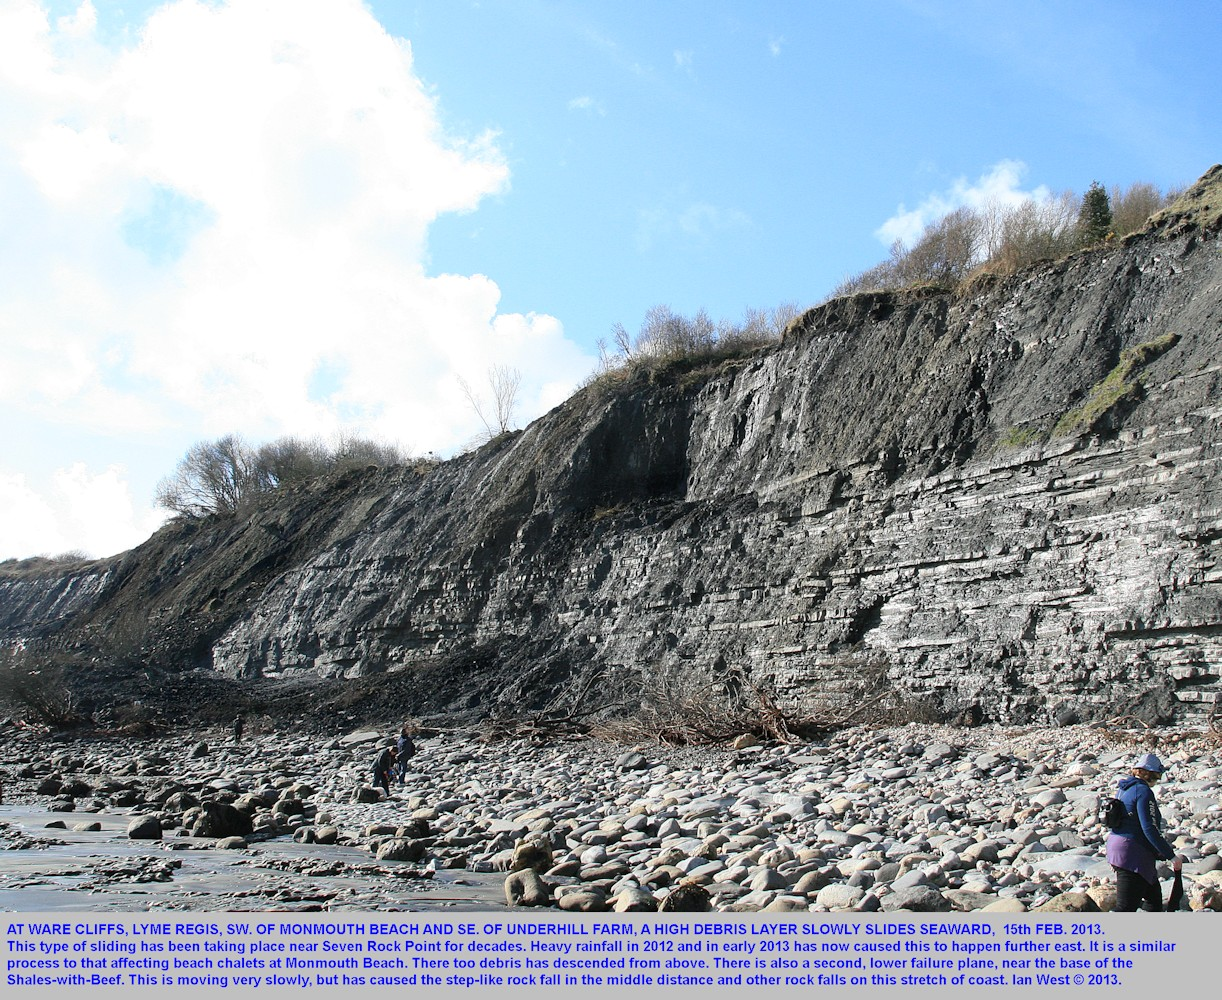 A new phase of landsliding at Ware Cliffs to Monmouth Beach, Lyme Regis, Dorset, February 2013